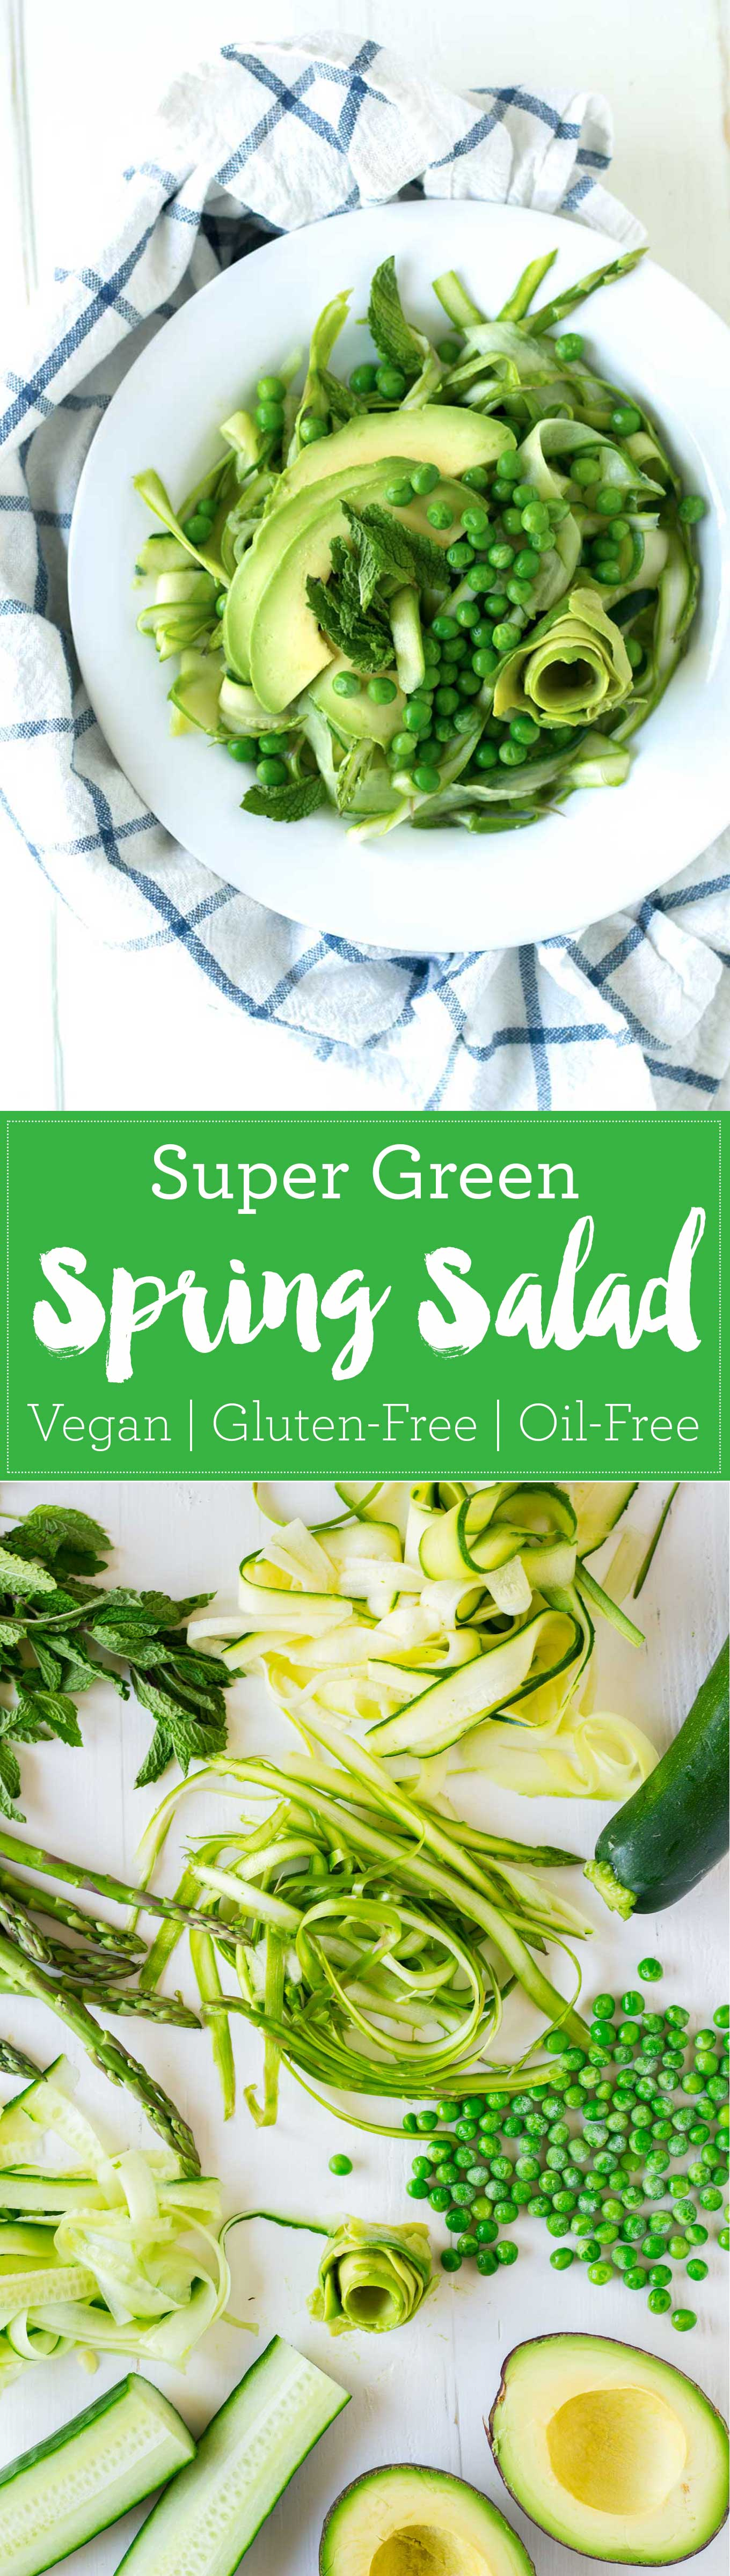 This super green spring salad is chock full of all of the green things of the season! Toss with a very simple 3-ingredient dressing and enjoy! Vegan, Gluten-Free, Oil-Free | https://eatwithinyourmeans.com